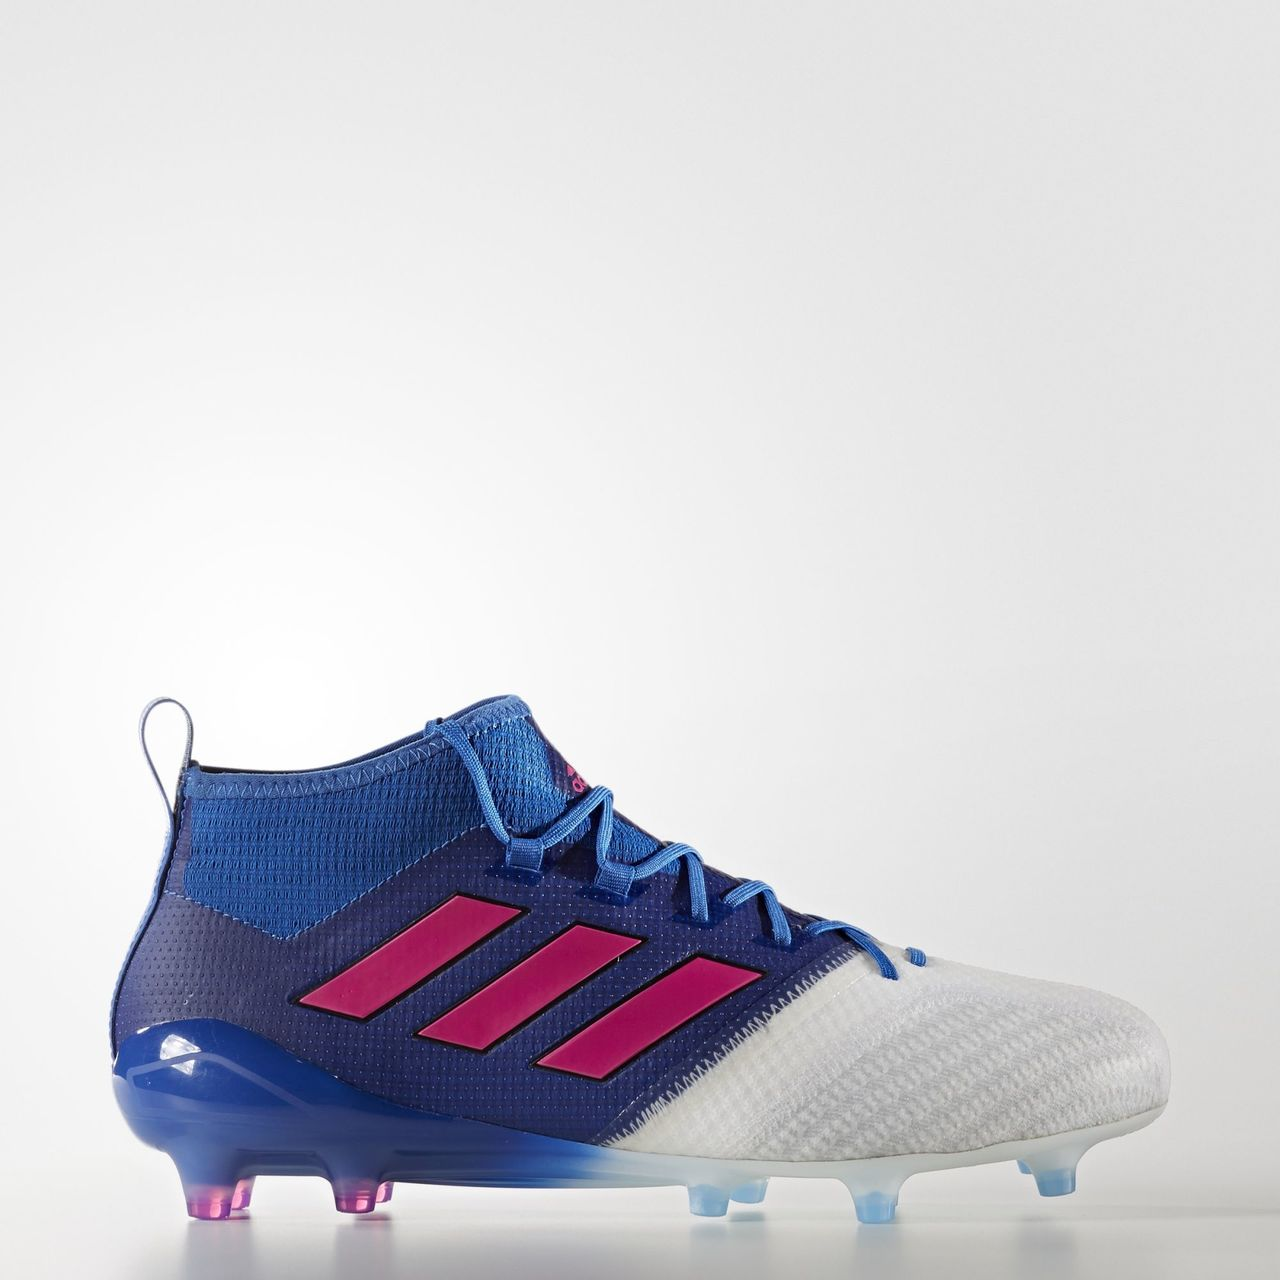 sale retailer 06dd7 dd34a Click to enlarge image  adidas ace 17 1 primeknit firm ground boots blue blast blue shock pink footwear white a.jpg  ...